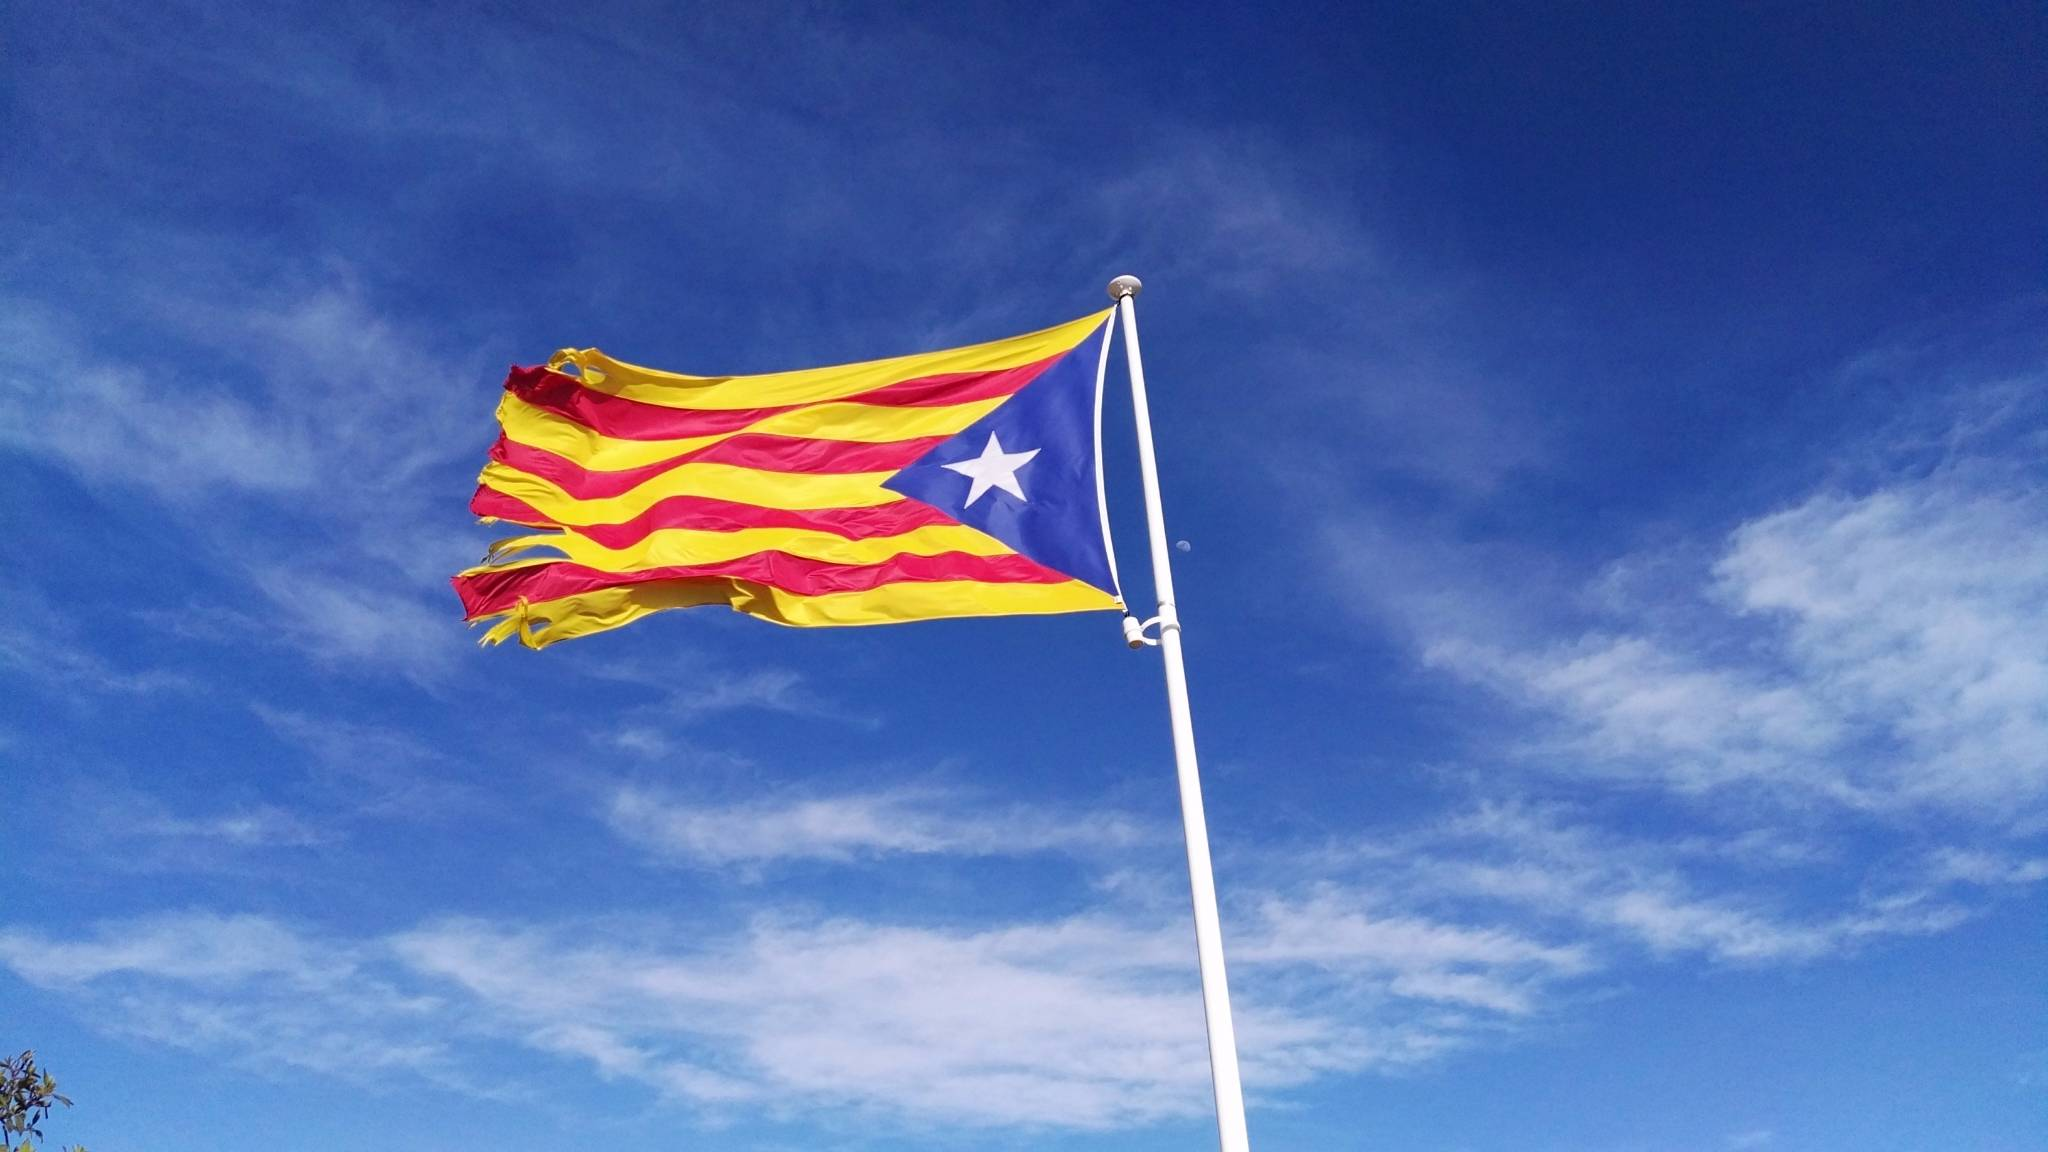 Estelada - the flag of Catalan independence.